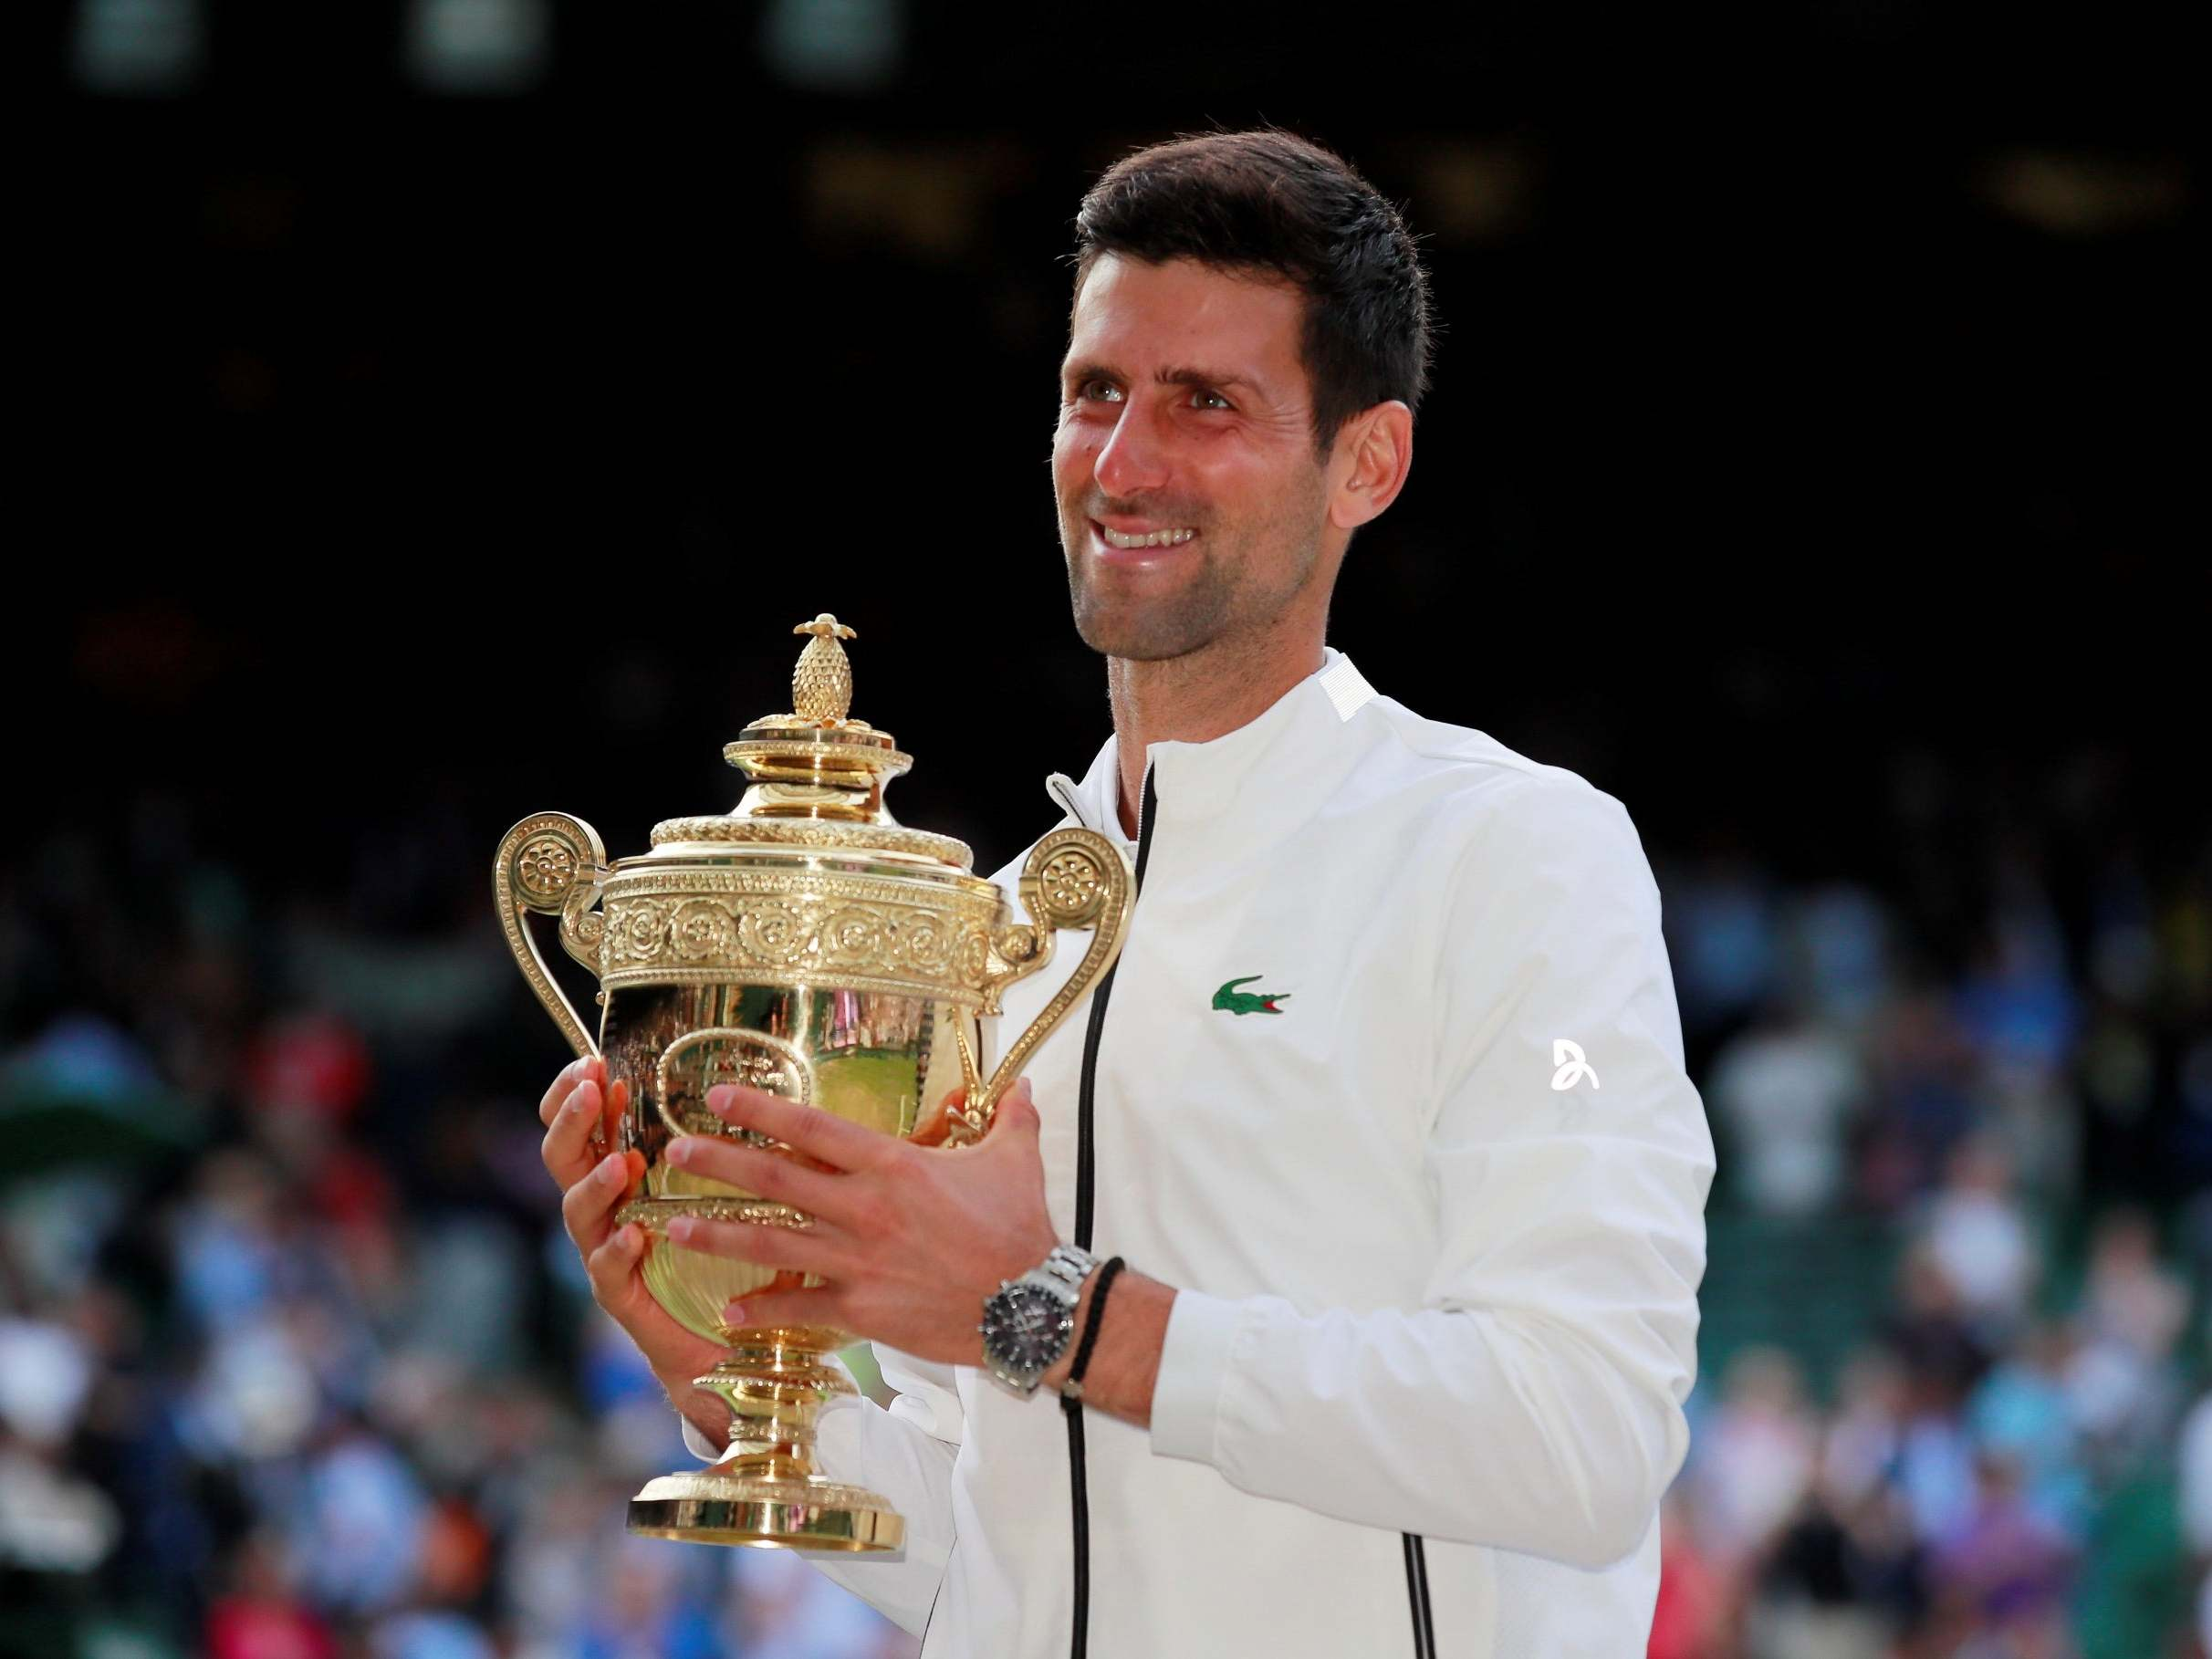 Wimbledon 2019 Novak Djokovic Beats Roger Federer To Retain Sw19 Title In Five Set Classic The Independent The Independent